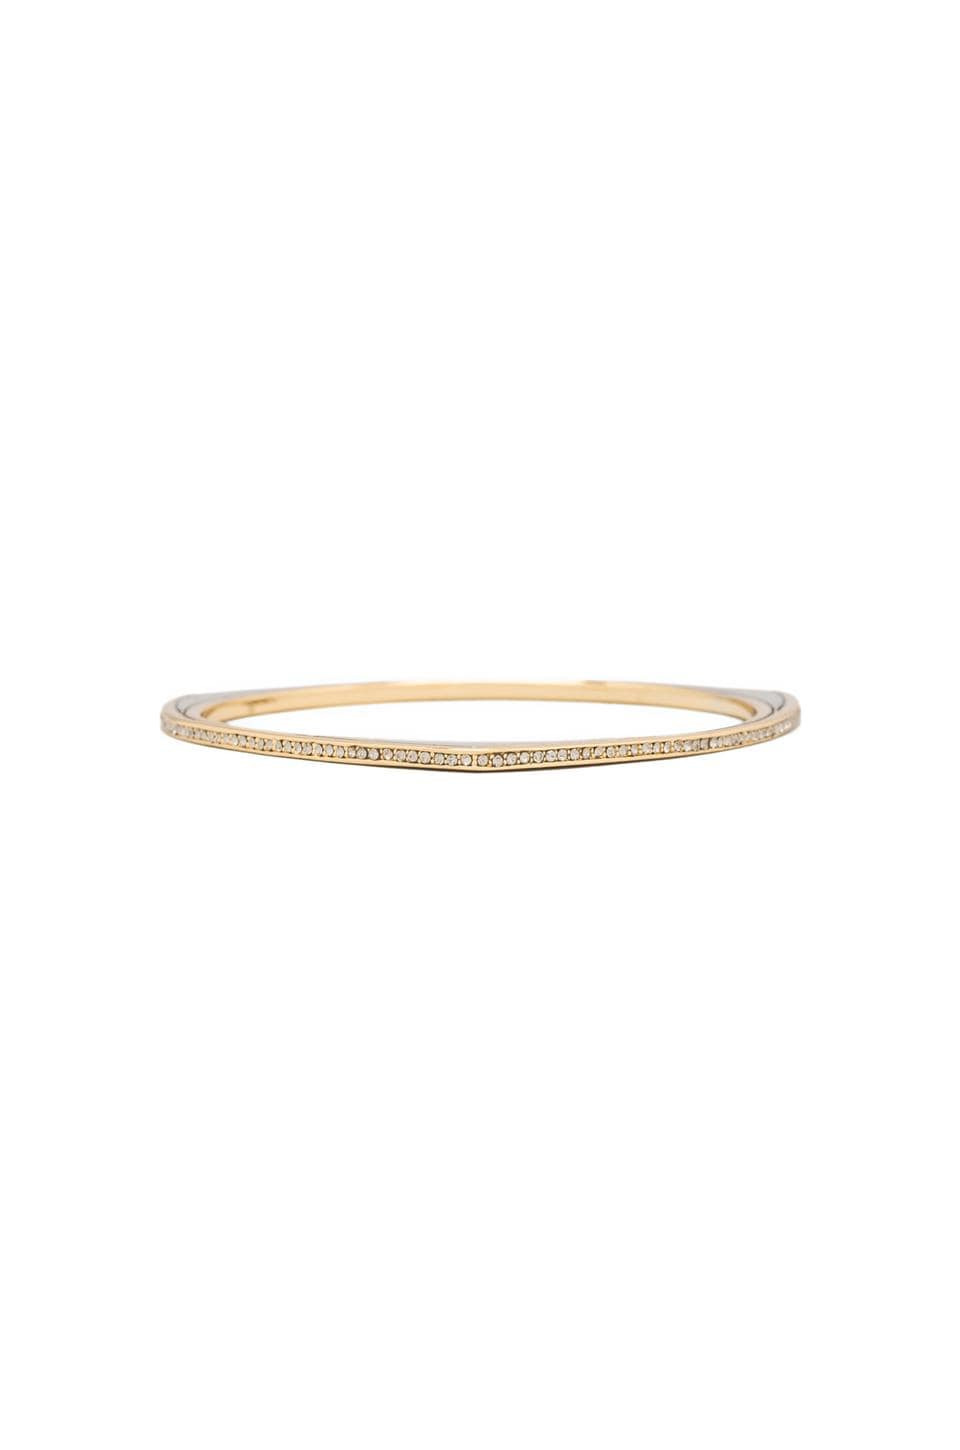 House of Harlow 1960 House of Harlow Modern Tribal Pave Bangle in Two Tone